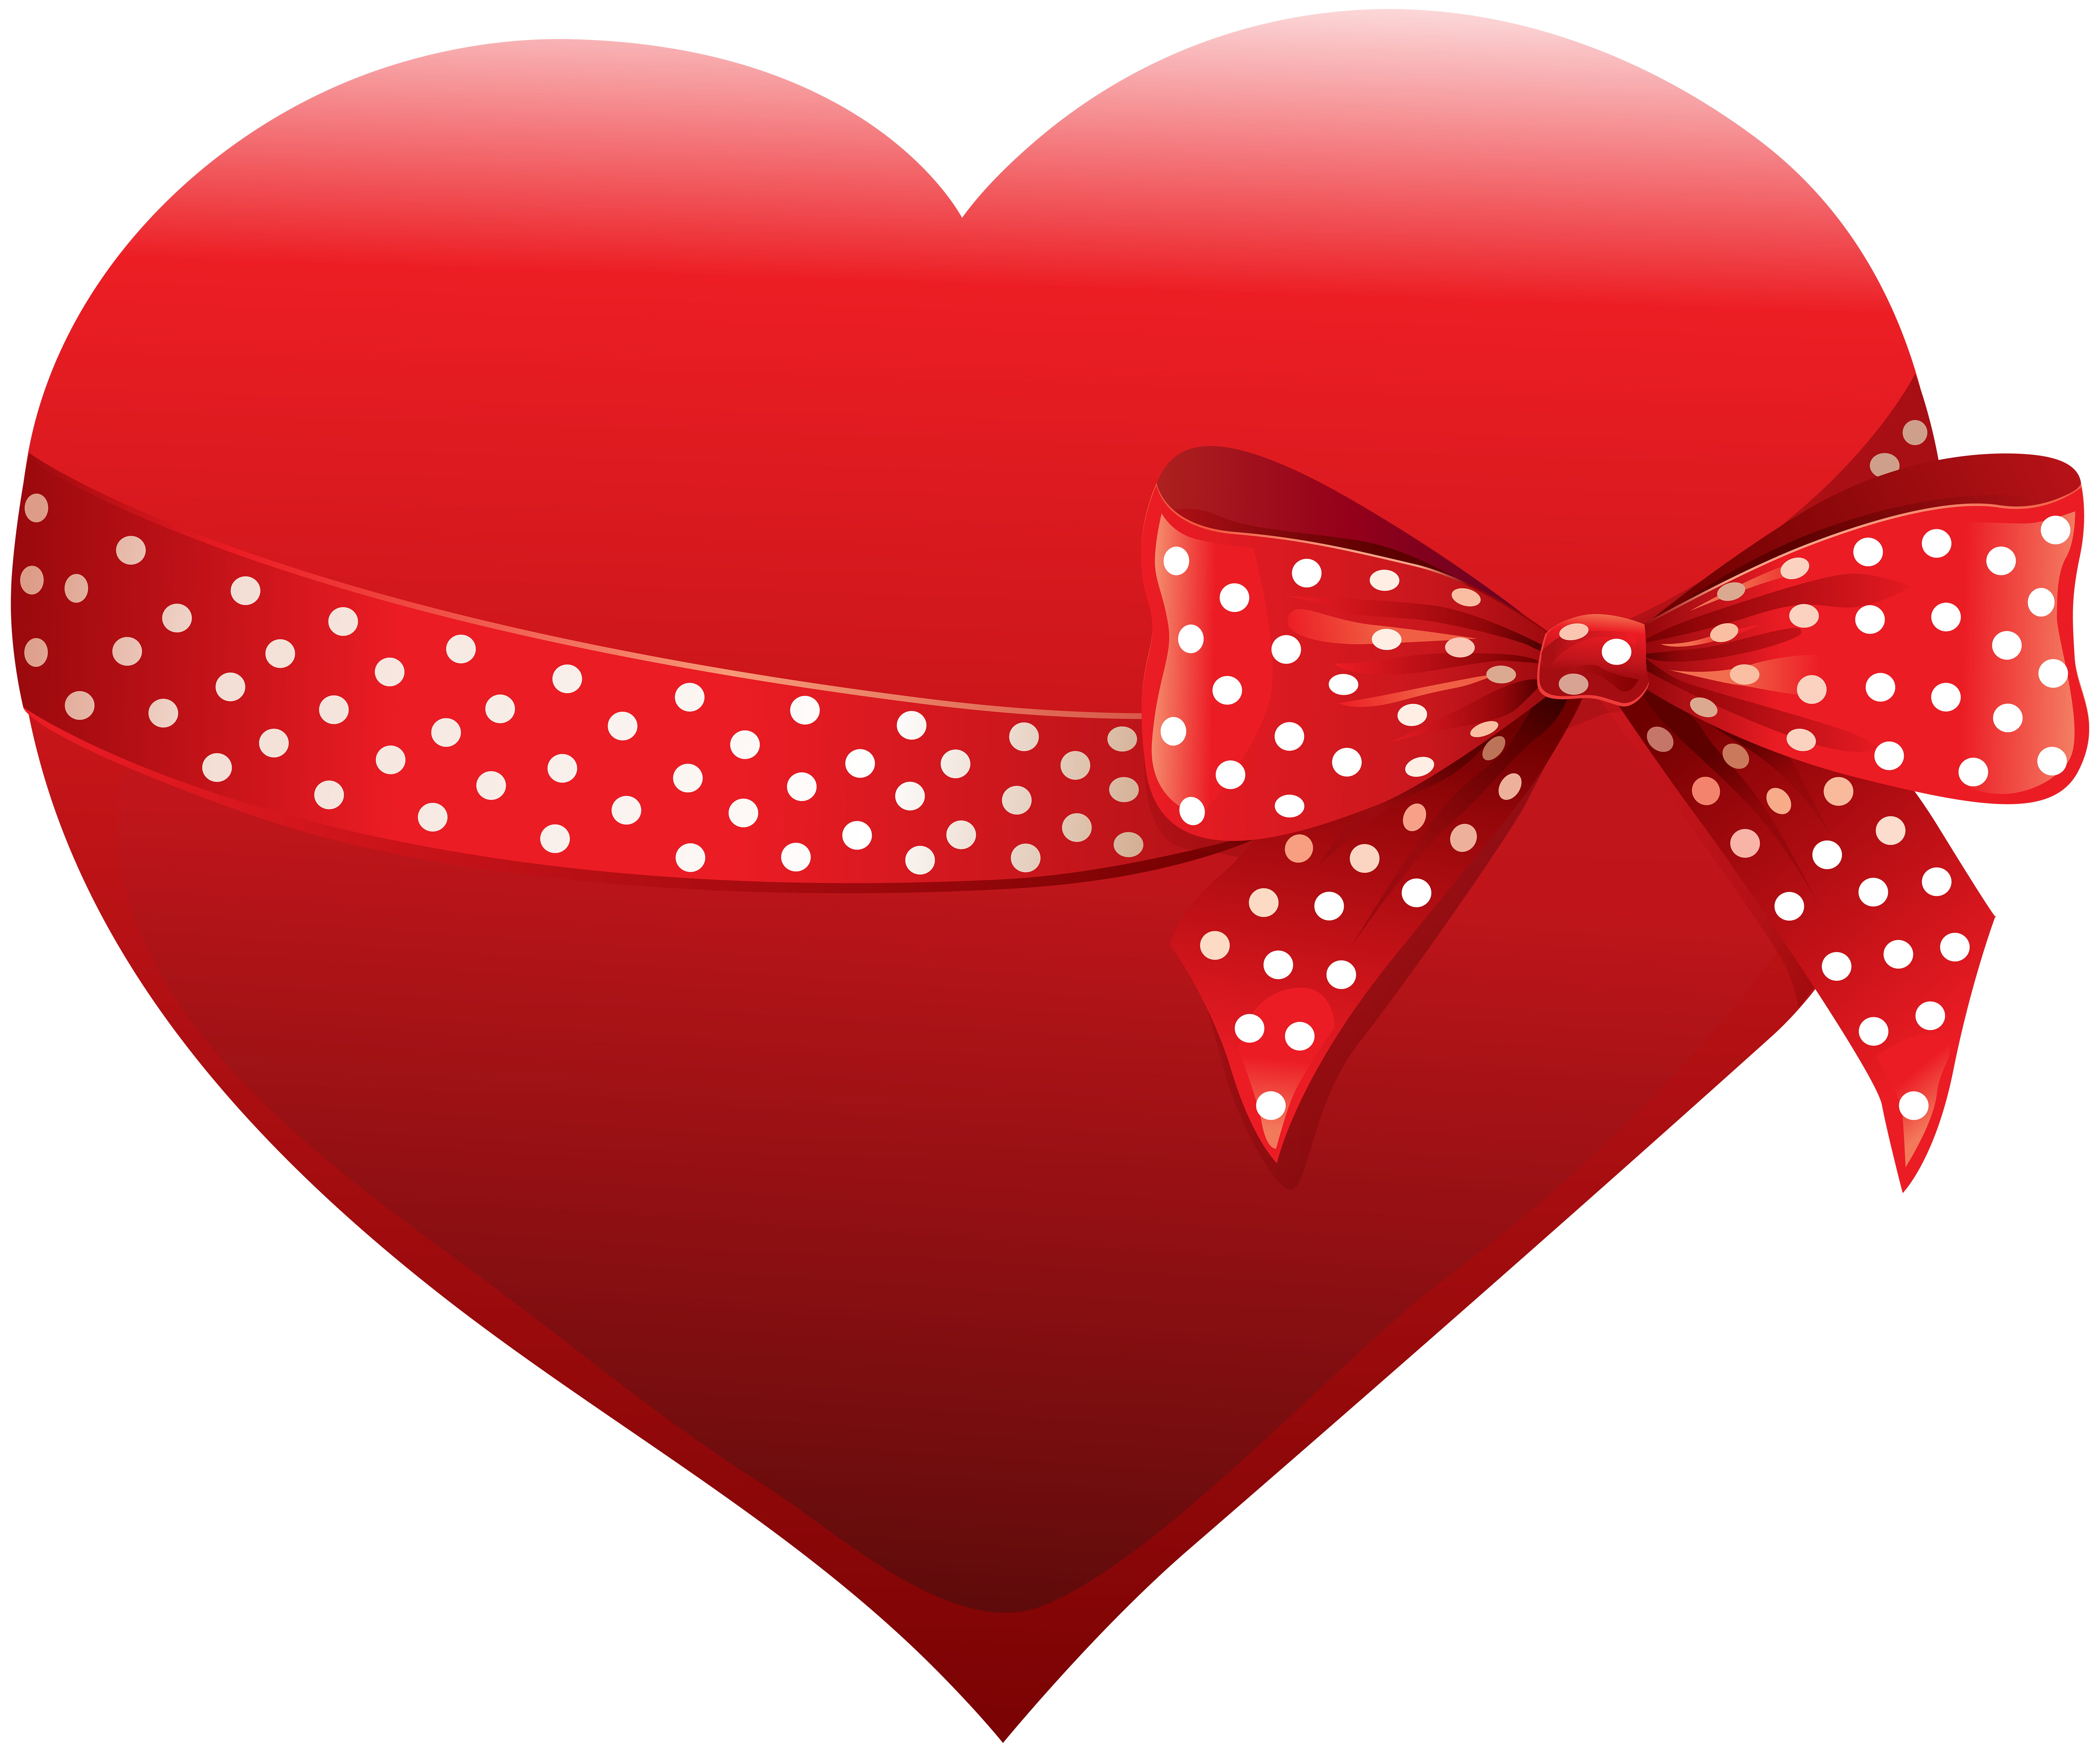 Clipart halloween heart. With bow transparent clip